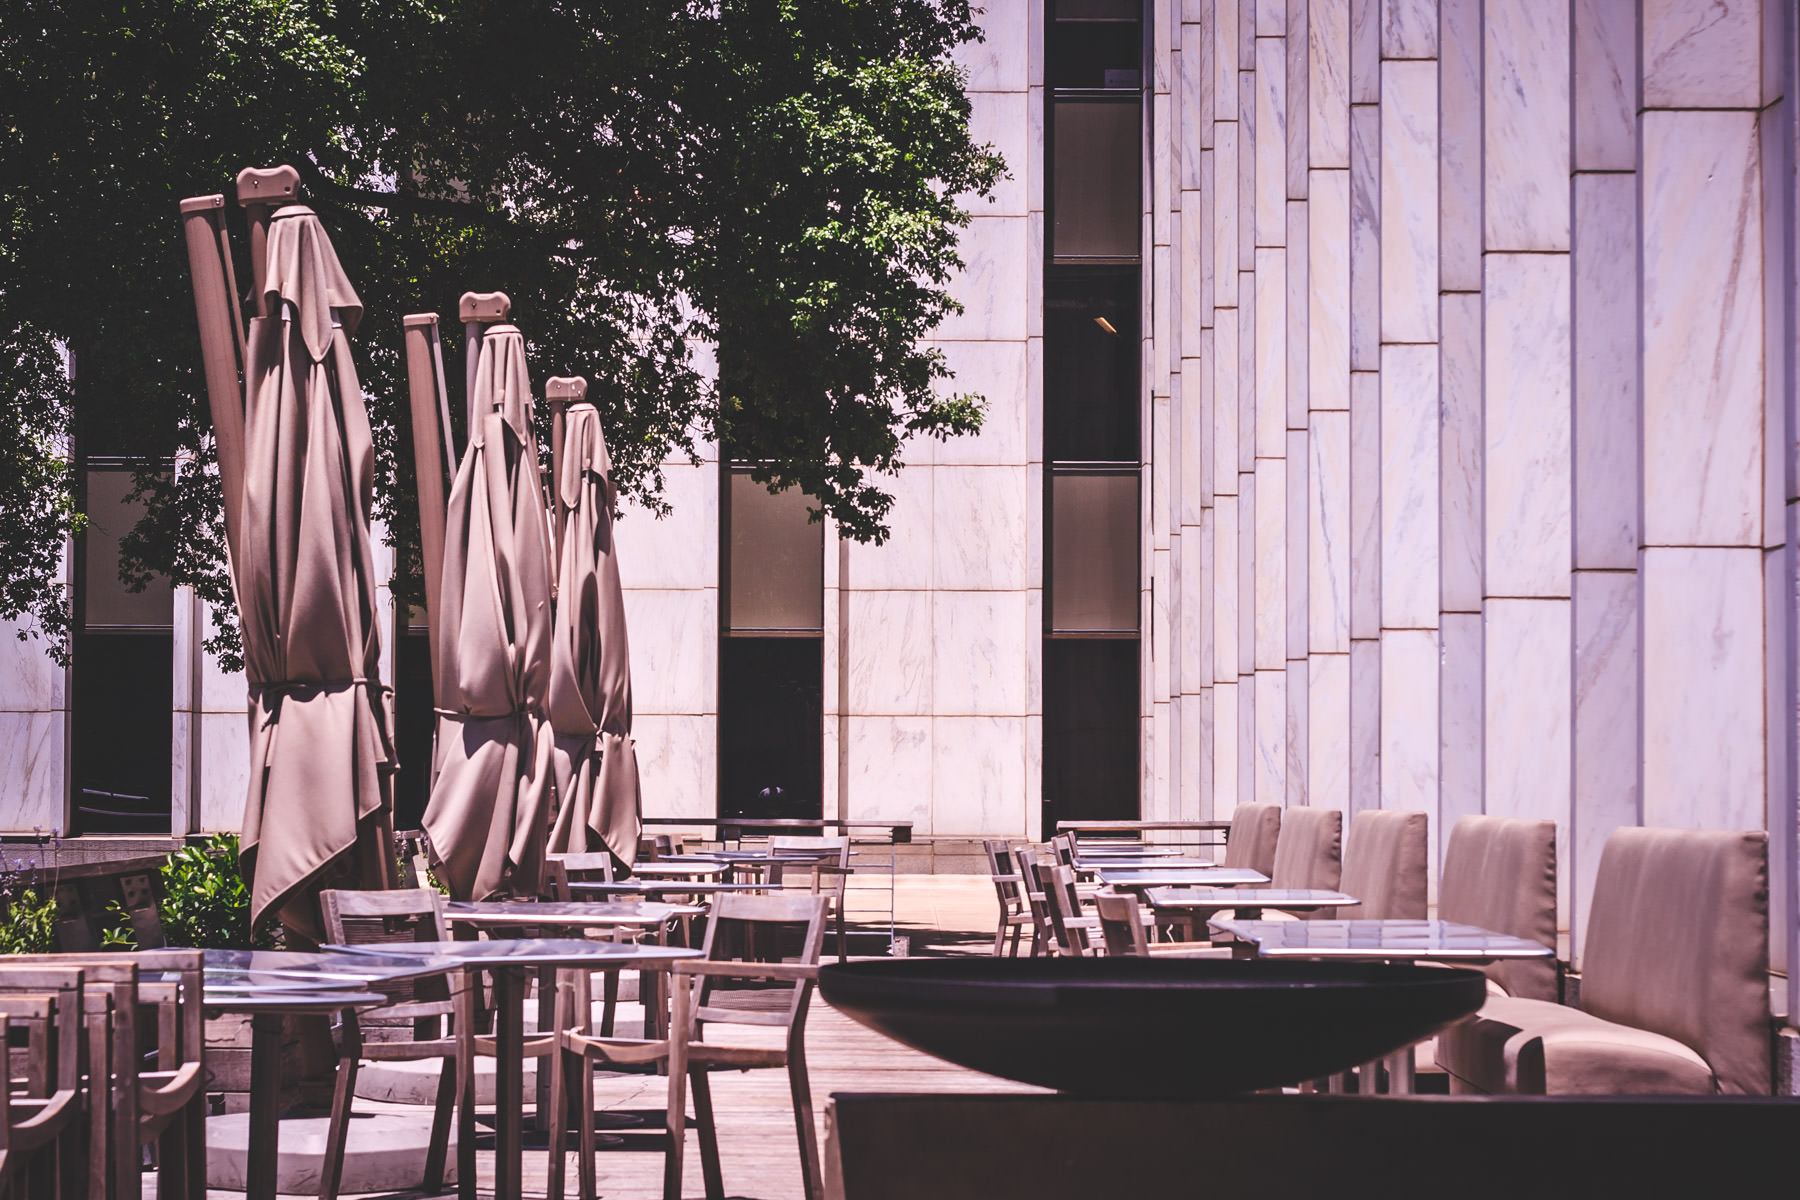 Cafe tables spotted in Downtown Dallas, Texas.